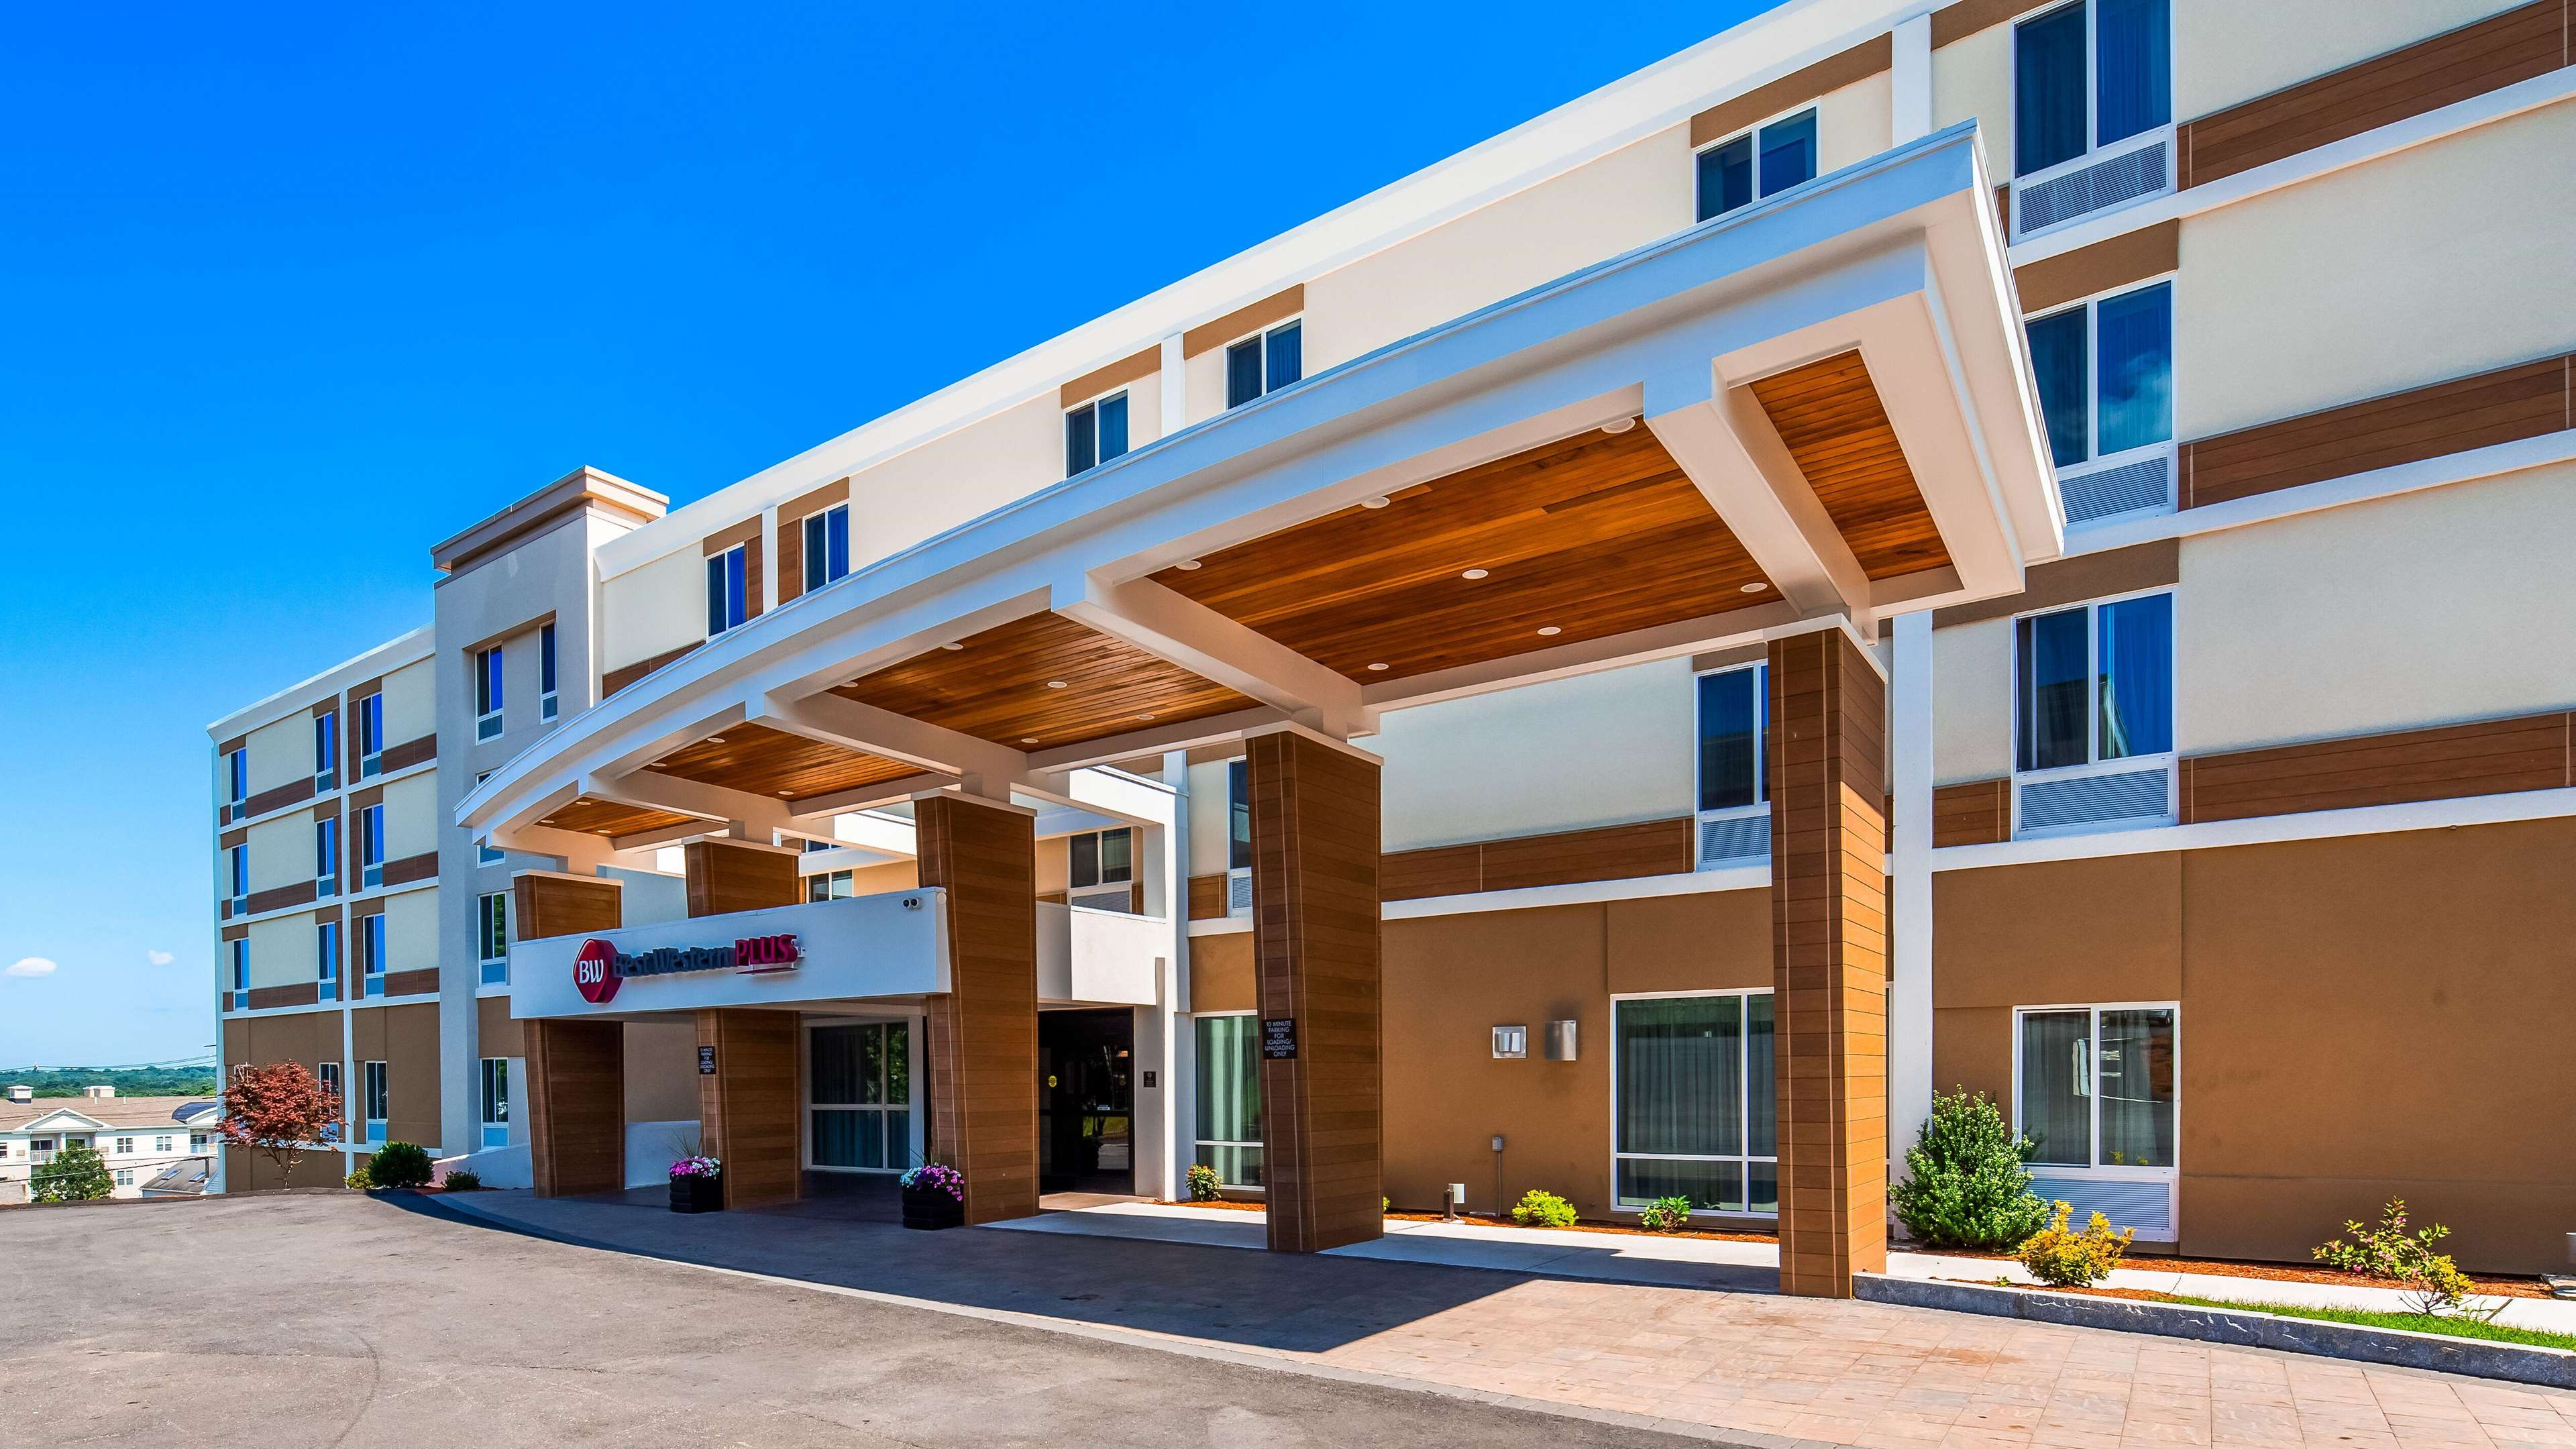 Best Western Plus North Shore Hotel image 0